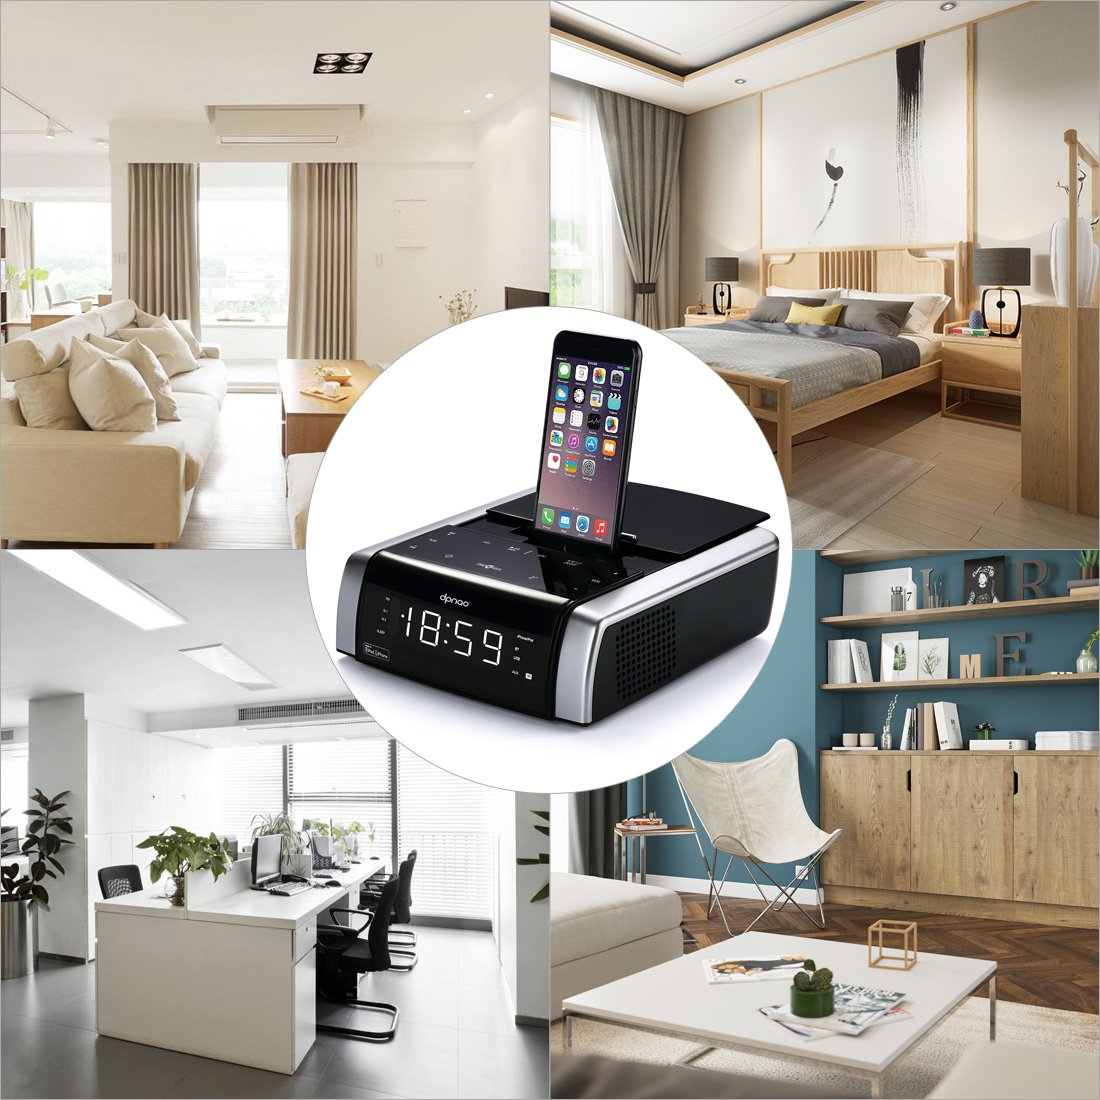 dpnao Charging Docks Station Speaker for iPhone Xs, XS Max, XR, X, iPhone 8, 7,6 Plus, Stereo Touch Key Bluetooth Wireless with Remote, USB Port to Charge Any USB Device (Apple Mfi Certified) by dpnao (Image #6)